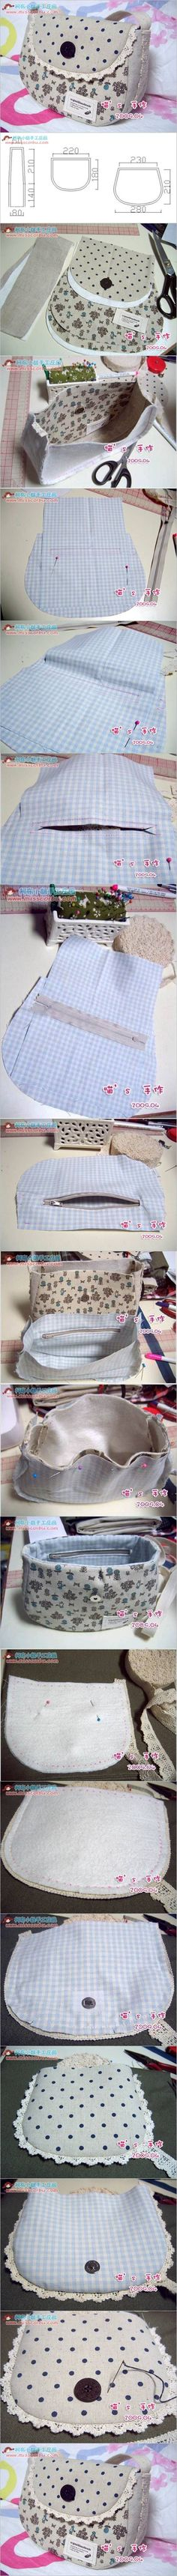 DIY How to Sew a Simple Summer Handbag ...♥ Deniz ♥